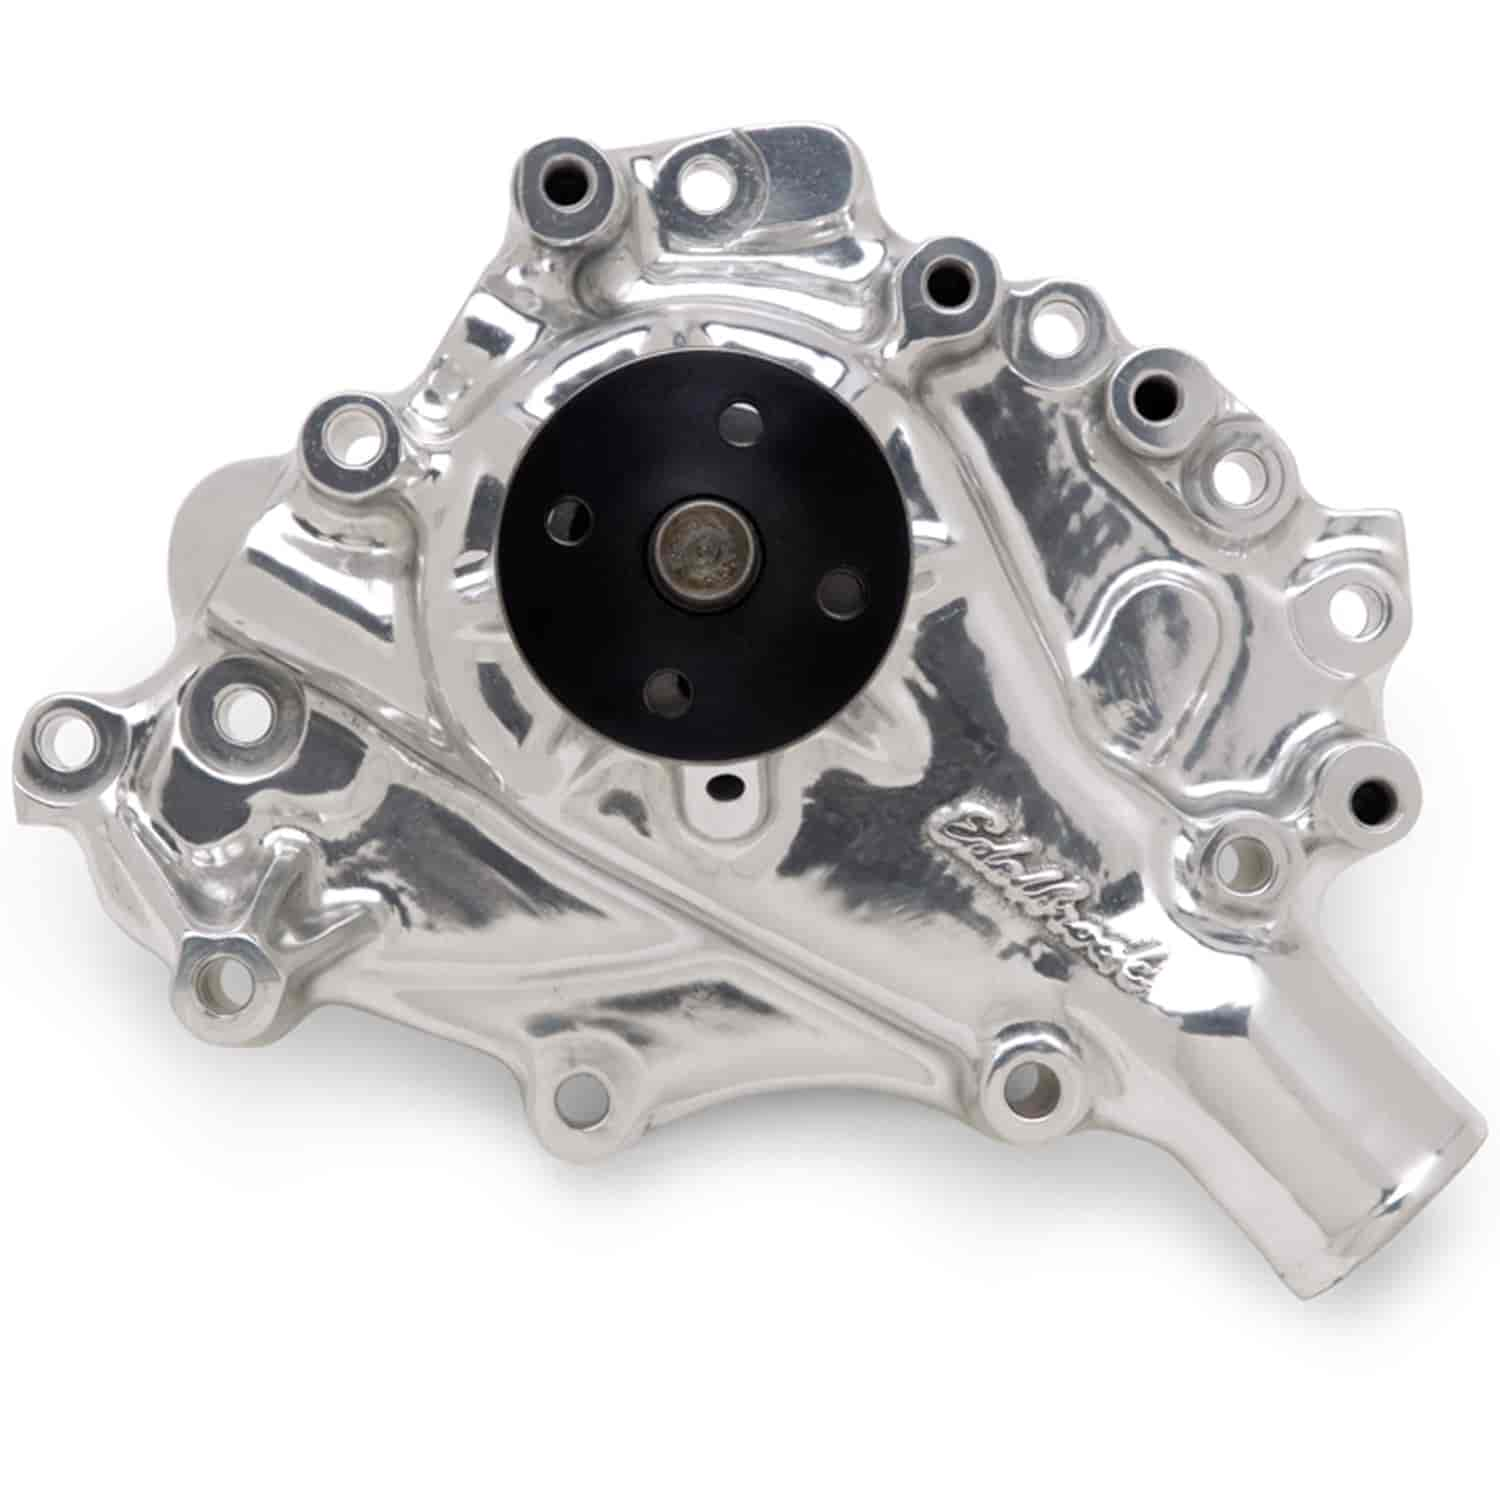 Edelbrock 8849 - Edelbrock Victor Series Water Pumps - Polished Finish